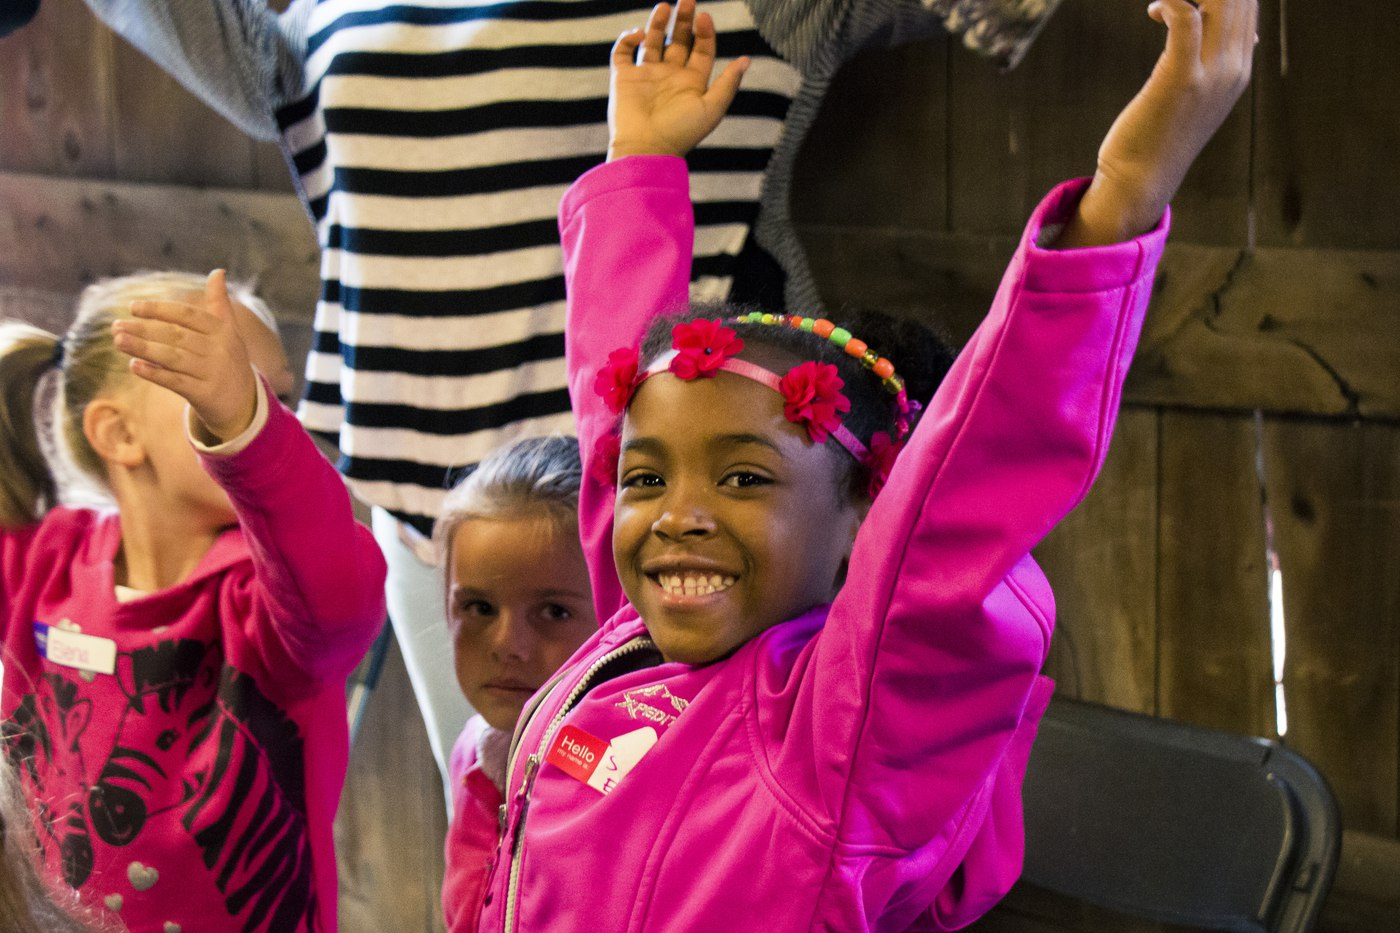 Excited kindergarten student with arms raised